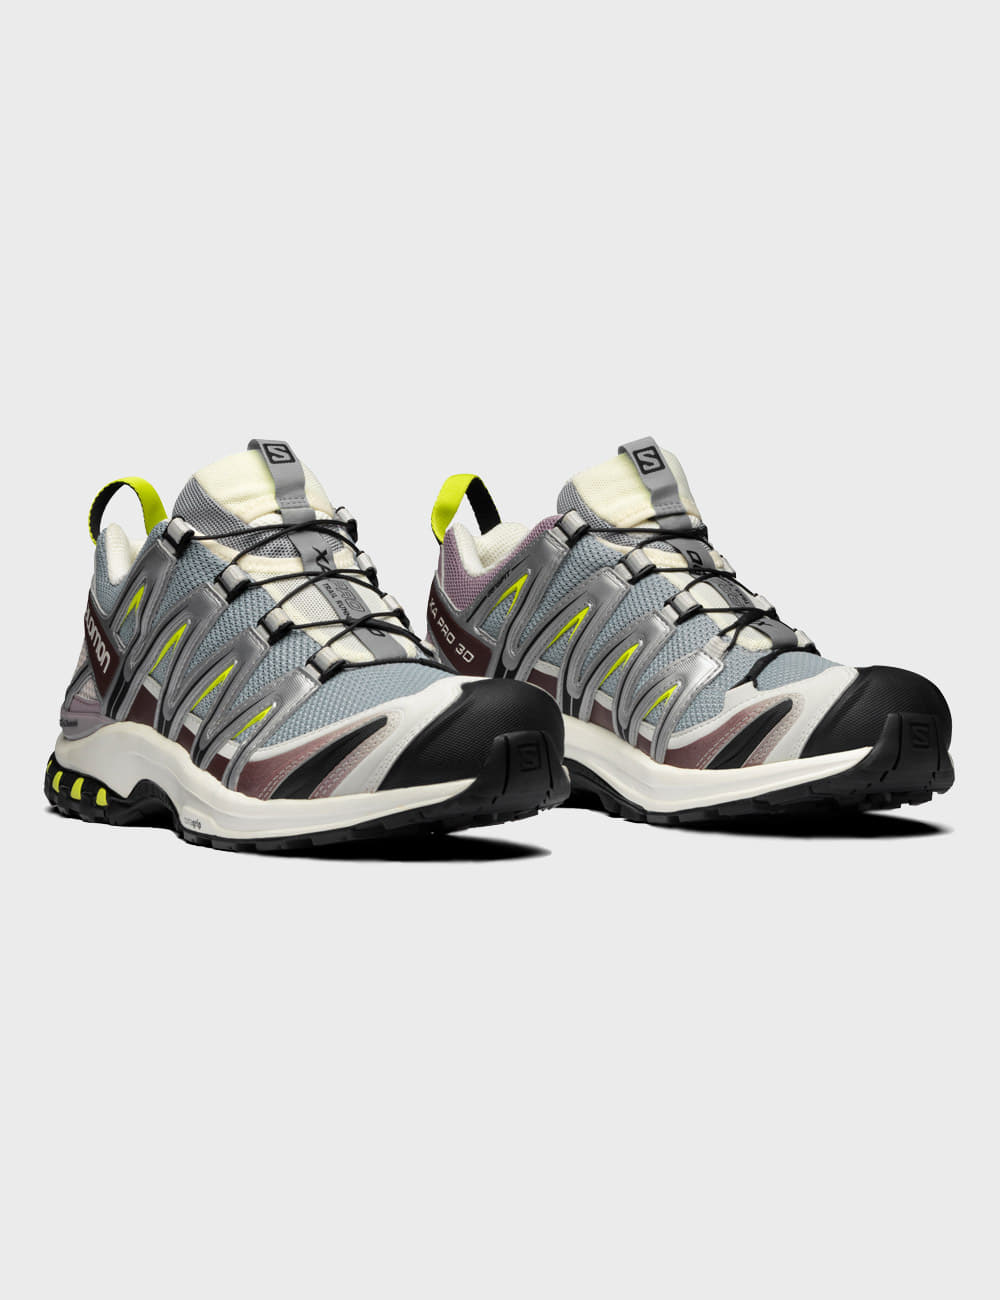 salomon : XA PRO 3D ADV (QUARRY/VANILLA/LIMEPUNCH)